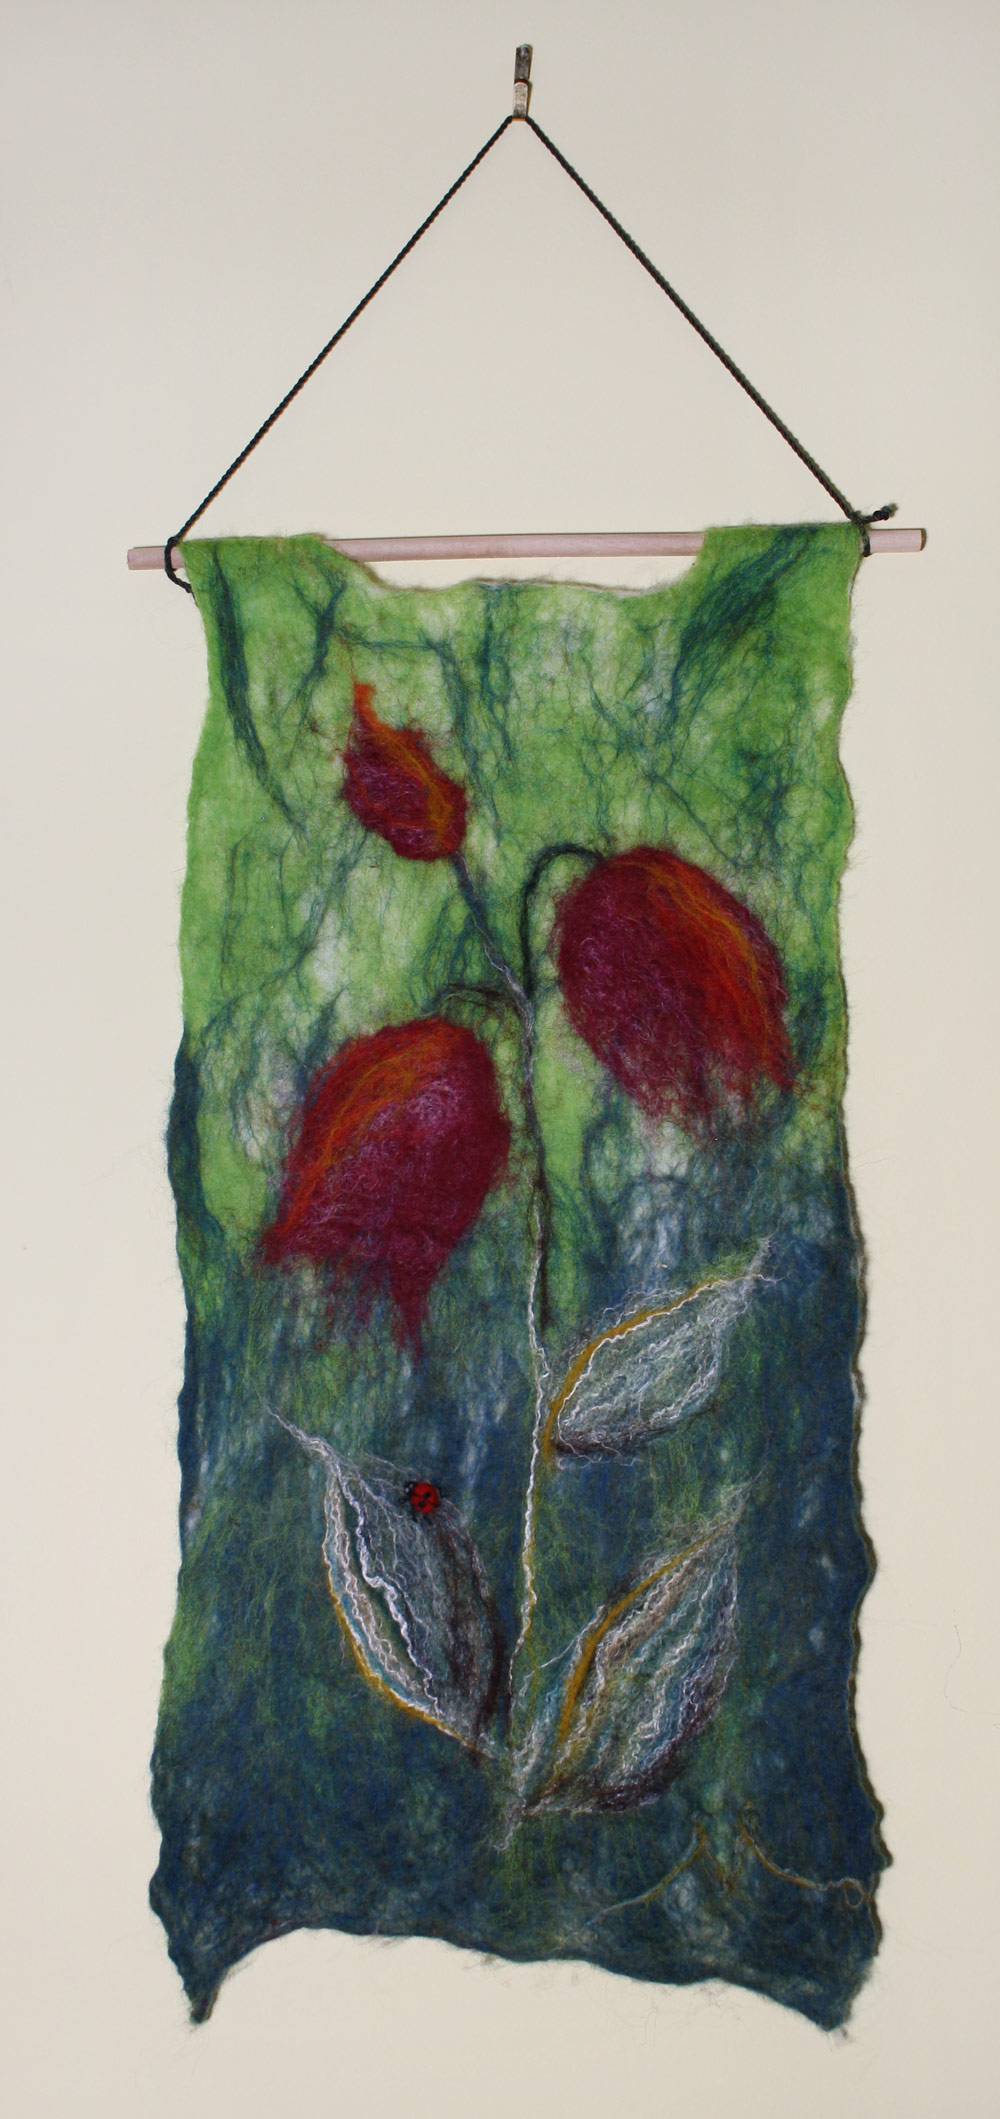 "Bellflower Ladybug Tapestry Wet felted tapestry of a bellflower in rich wine reds and oranges. Ladybug needled felted on leaf in relief. 9.75""w x 20""h to rod. SOLD."